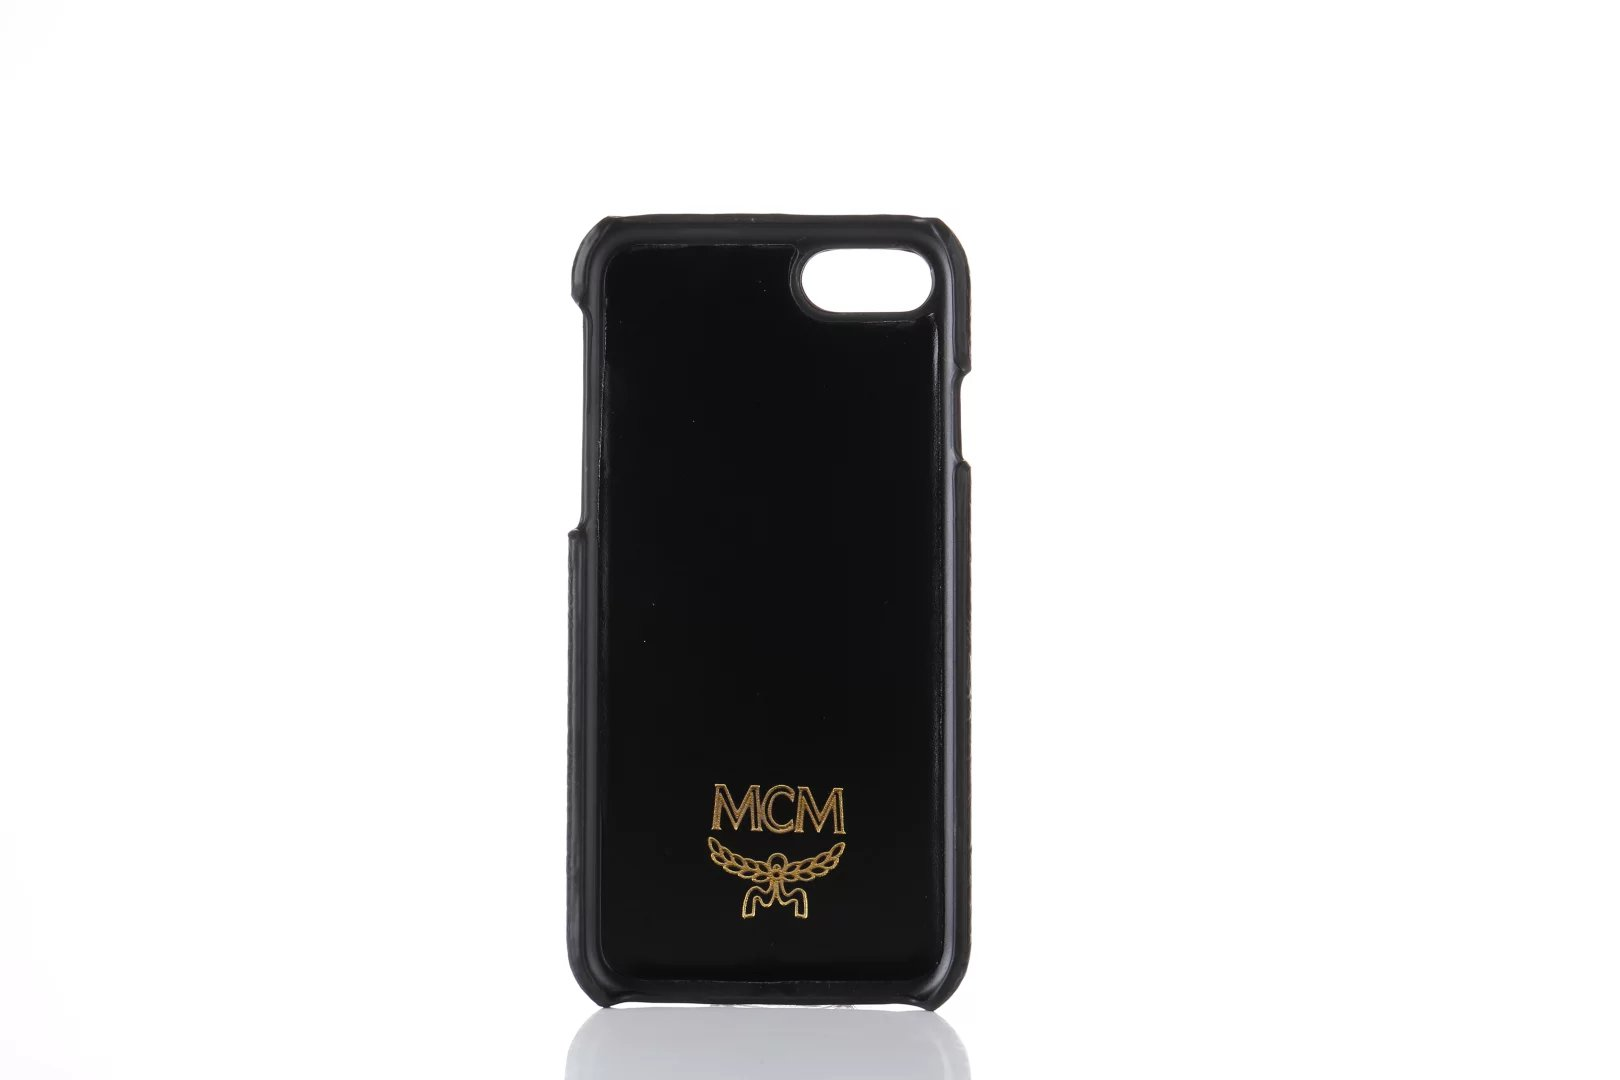 iphone 8 with cover best case for iphone 8 MCM iphone 8 case top rated iphone 8 case i 6 phone cases iphone 6a cases mophie juice iphone 8 battery juice iphone cover best